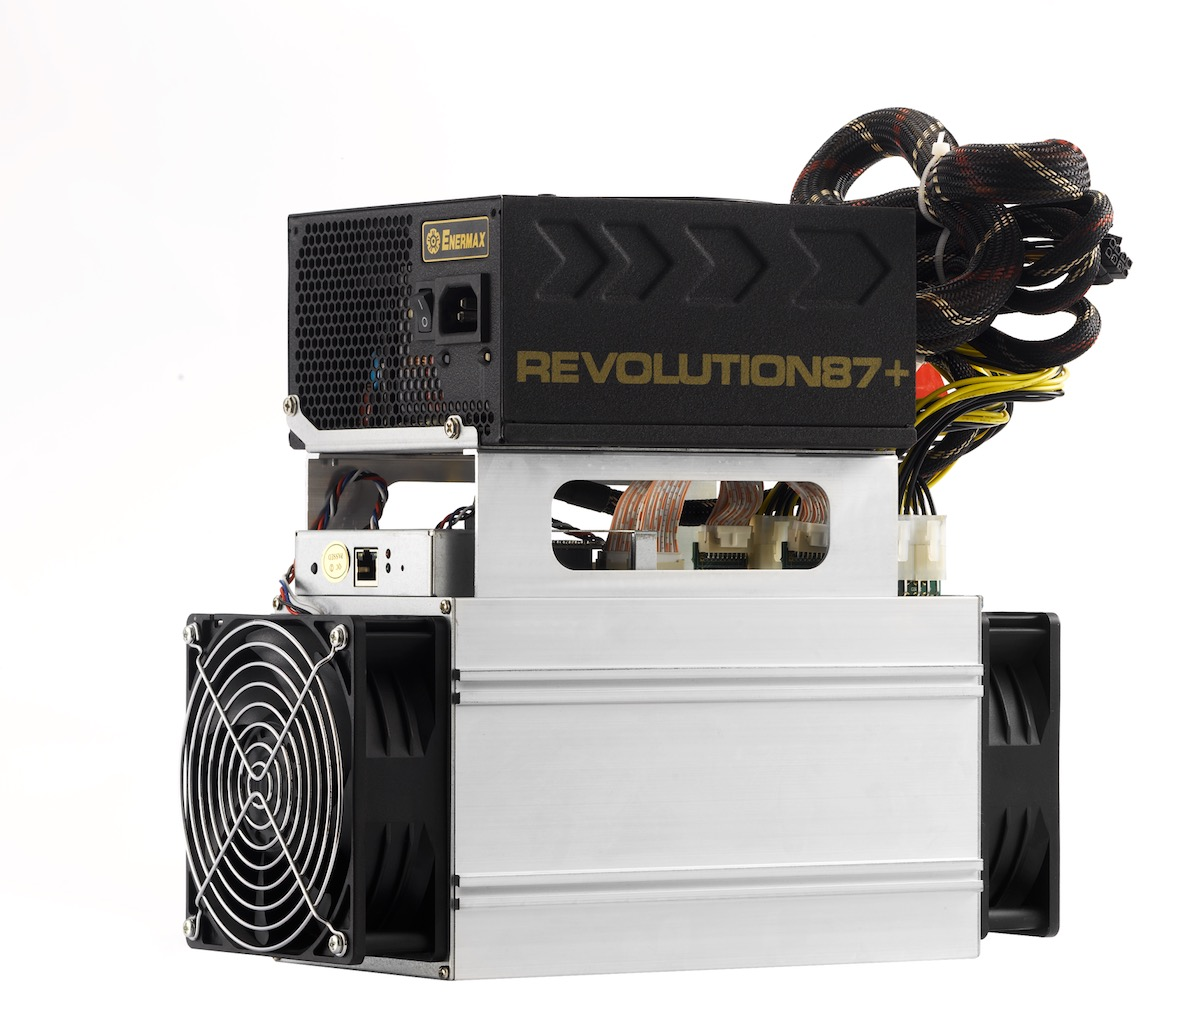 S7 Antminer LN